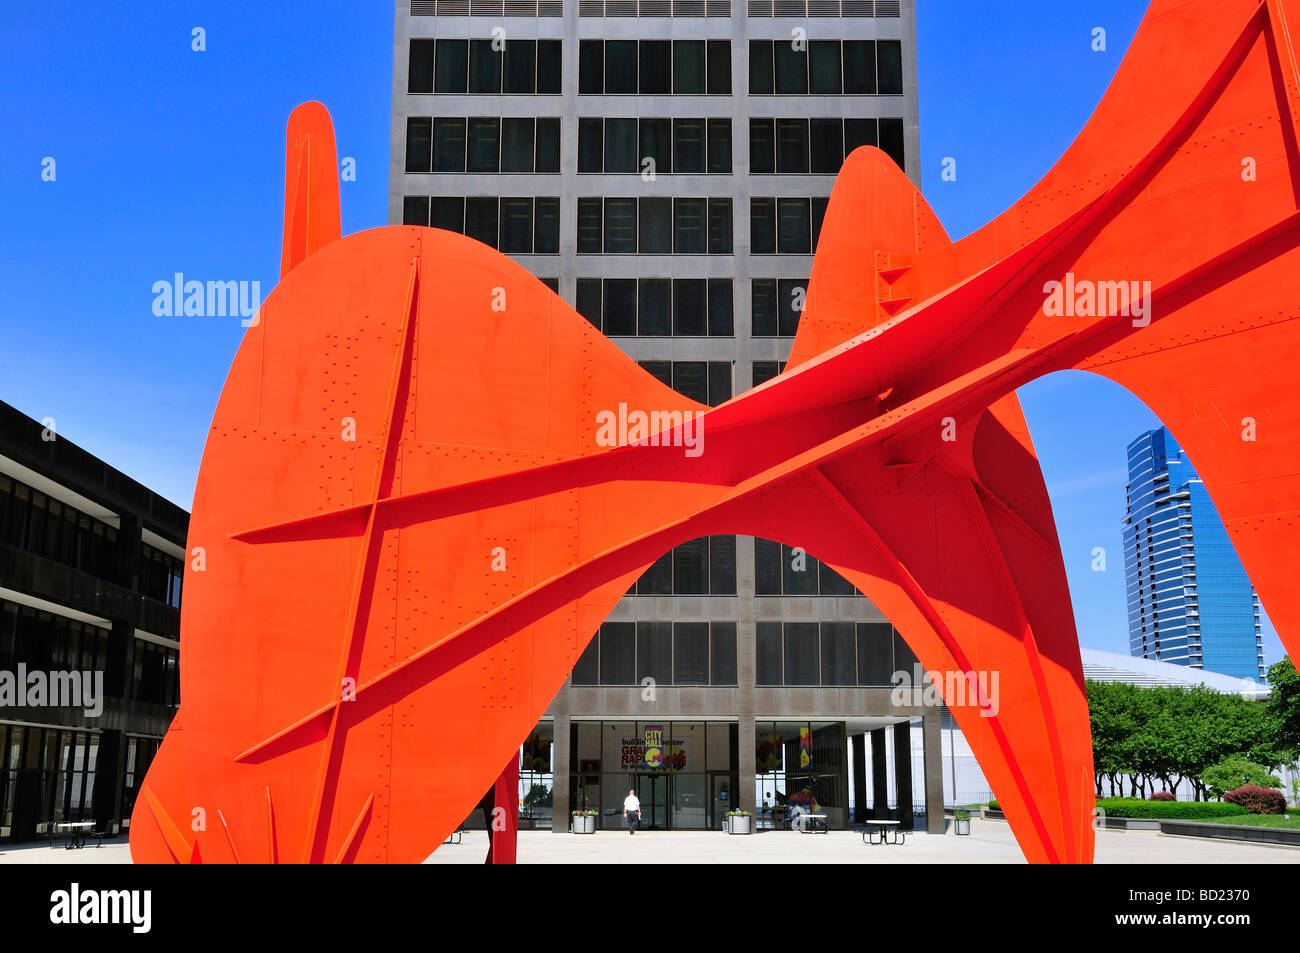 Grand Rapids City Hall on  Calder Plaza. The giant red stabile, La Grande Vitesse was dedicated in 1969 - Stock Image